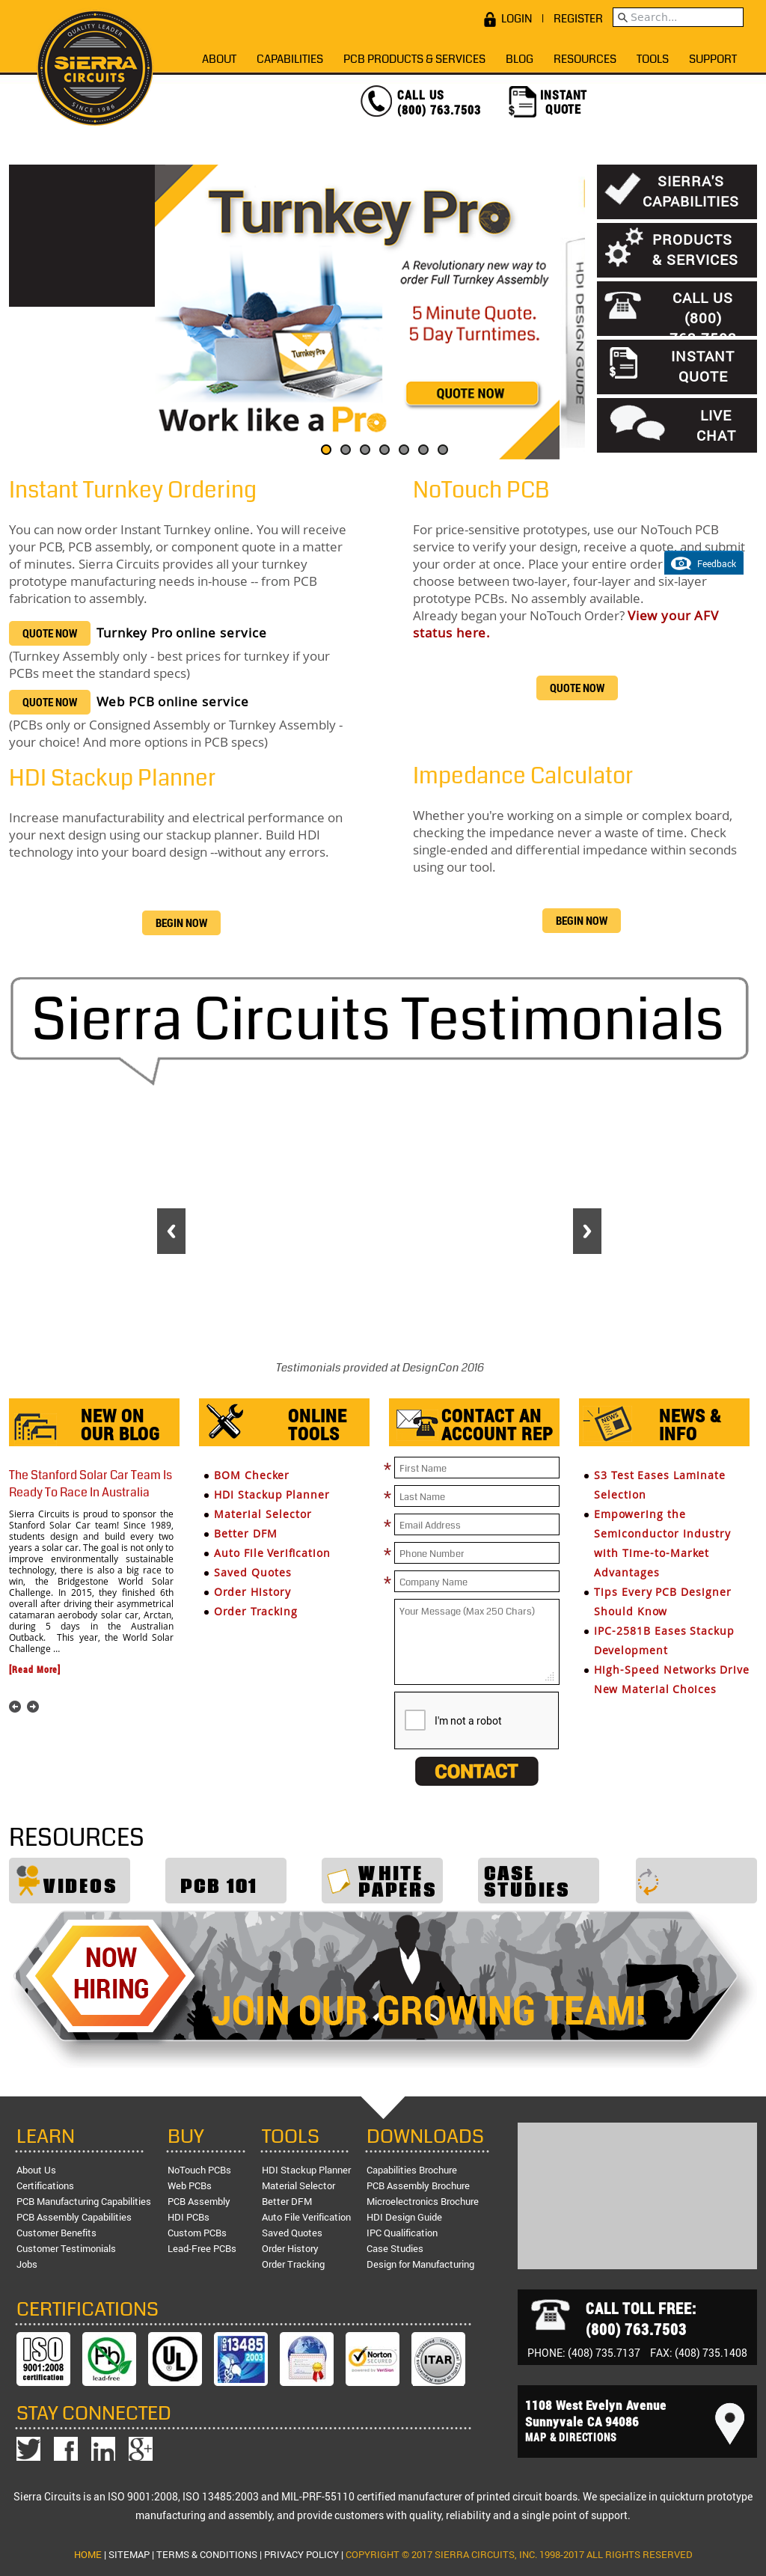 Sierra Circuits Competitors, Revenue and Employees - Owler